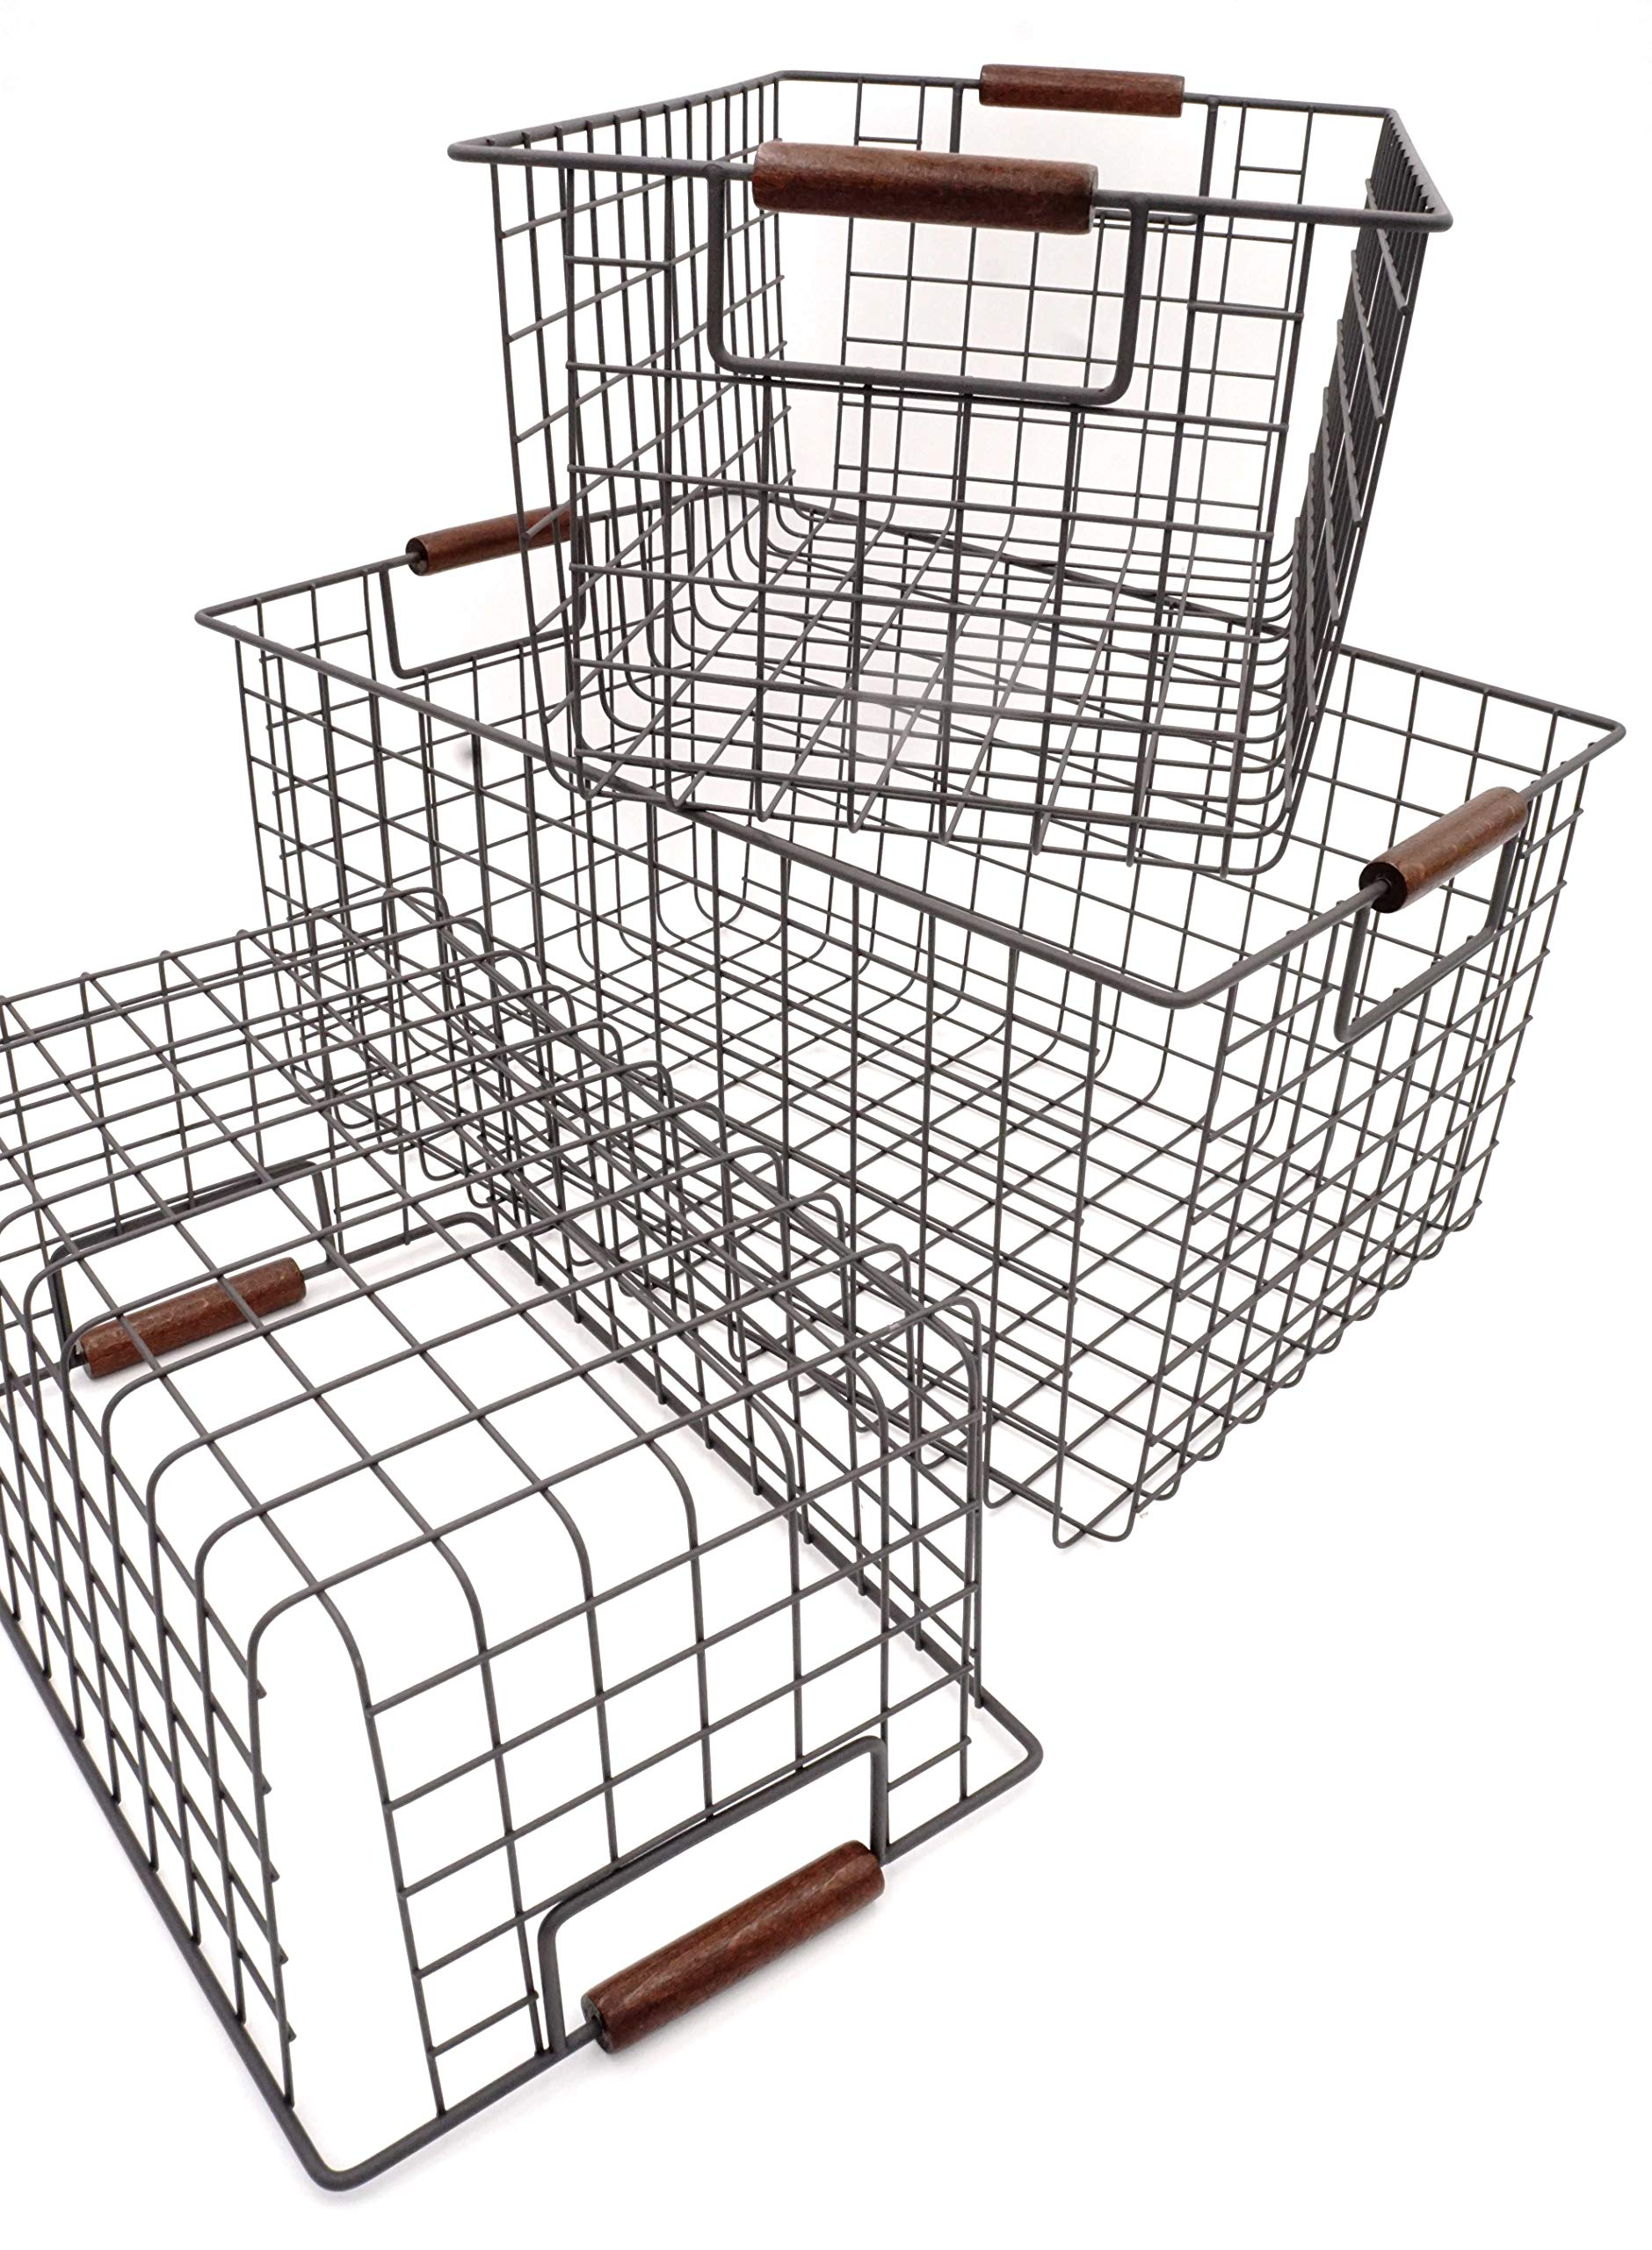 KeKaBox Set of 3 Metal Wire Nesting Storage Baskets with Wood Handles by KeKaBox (Image #2)